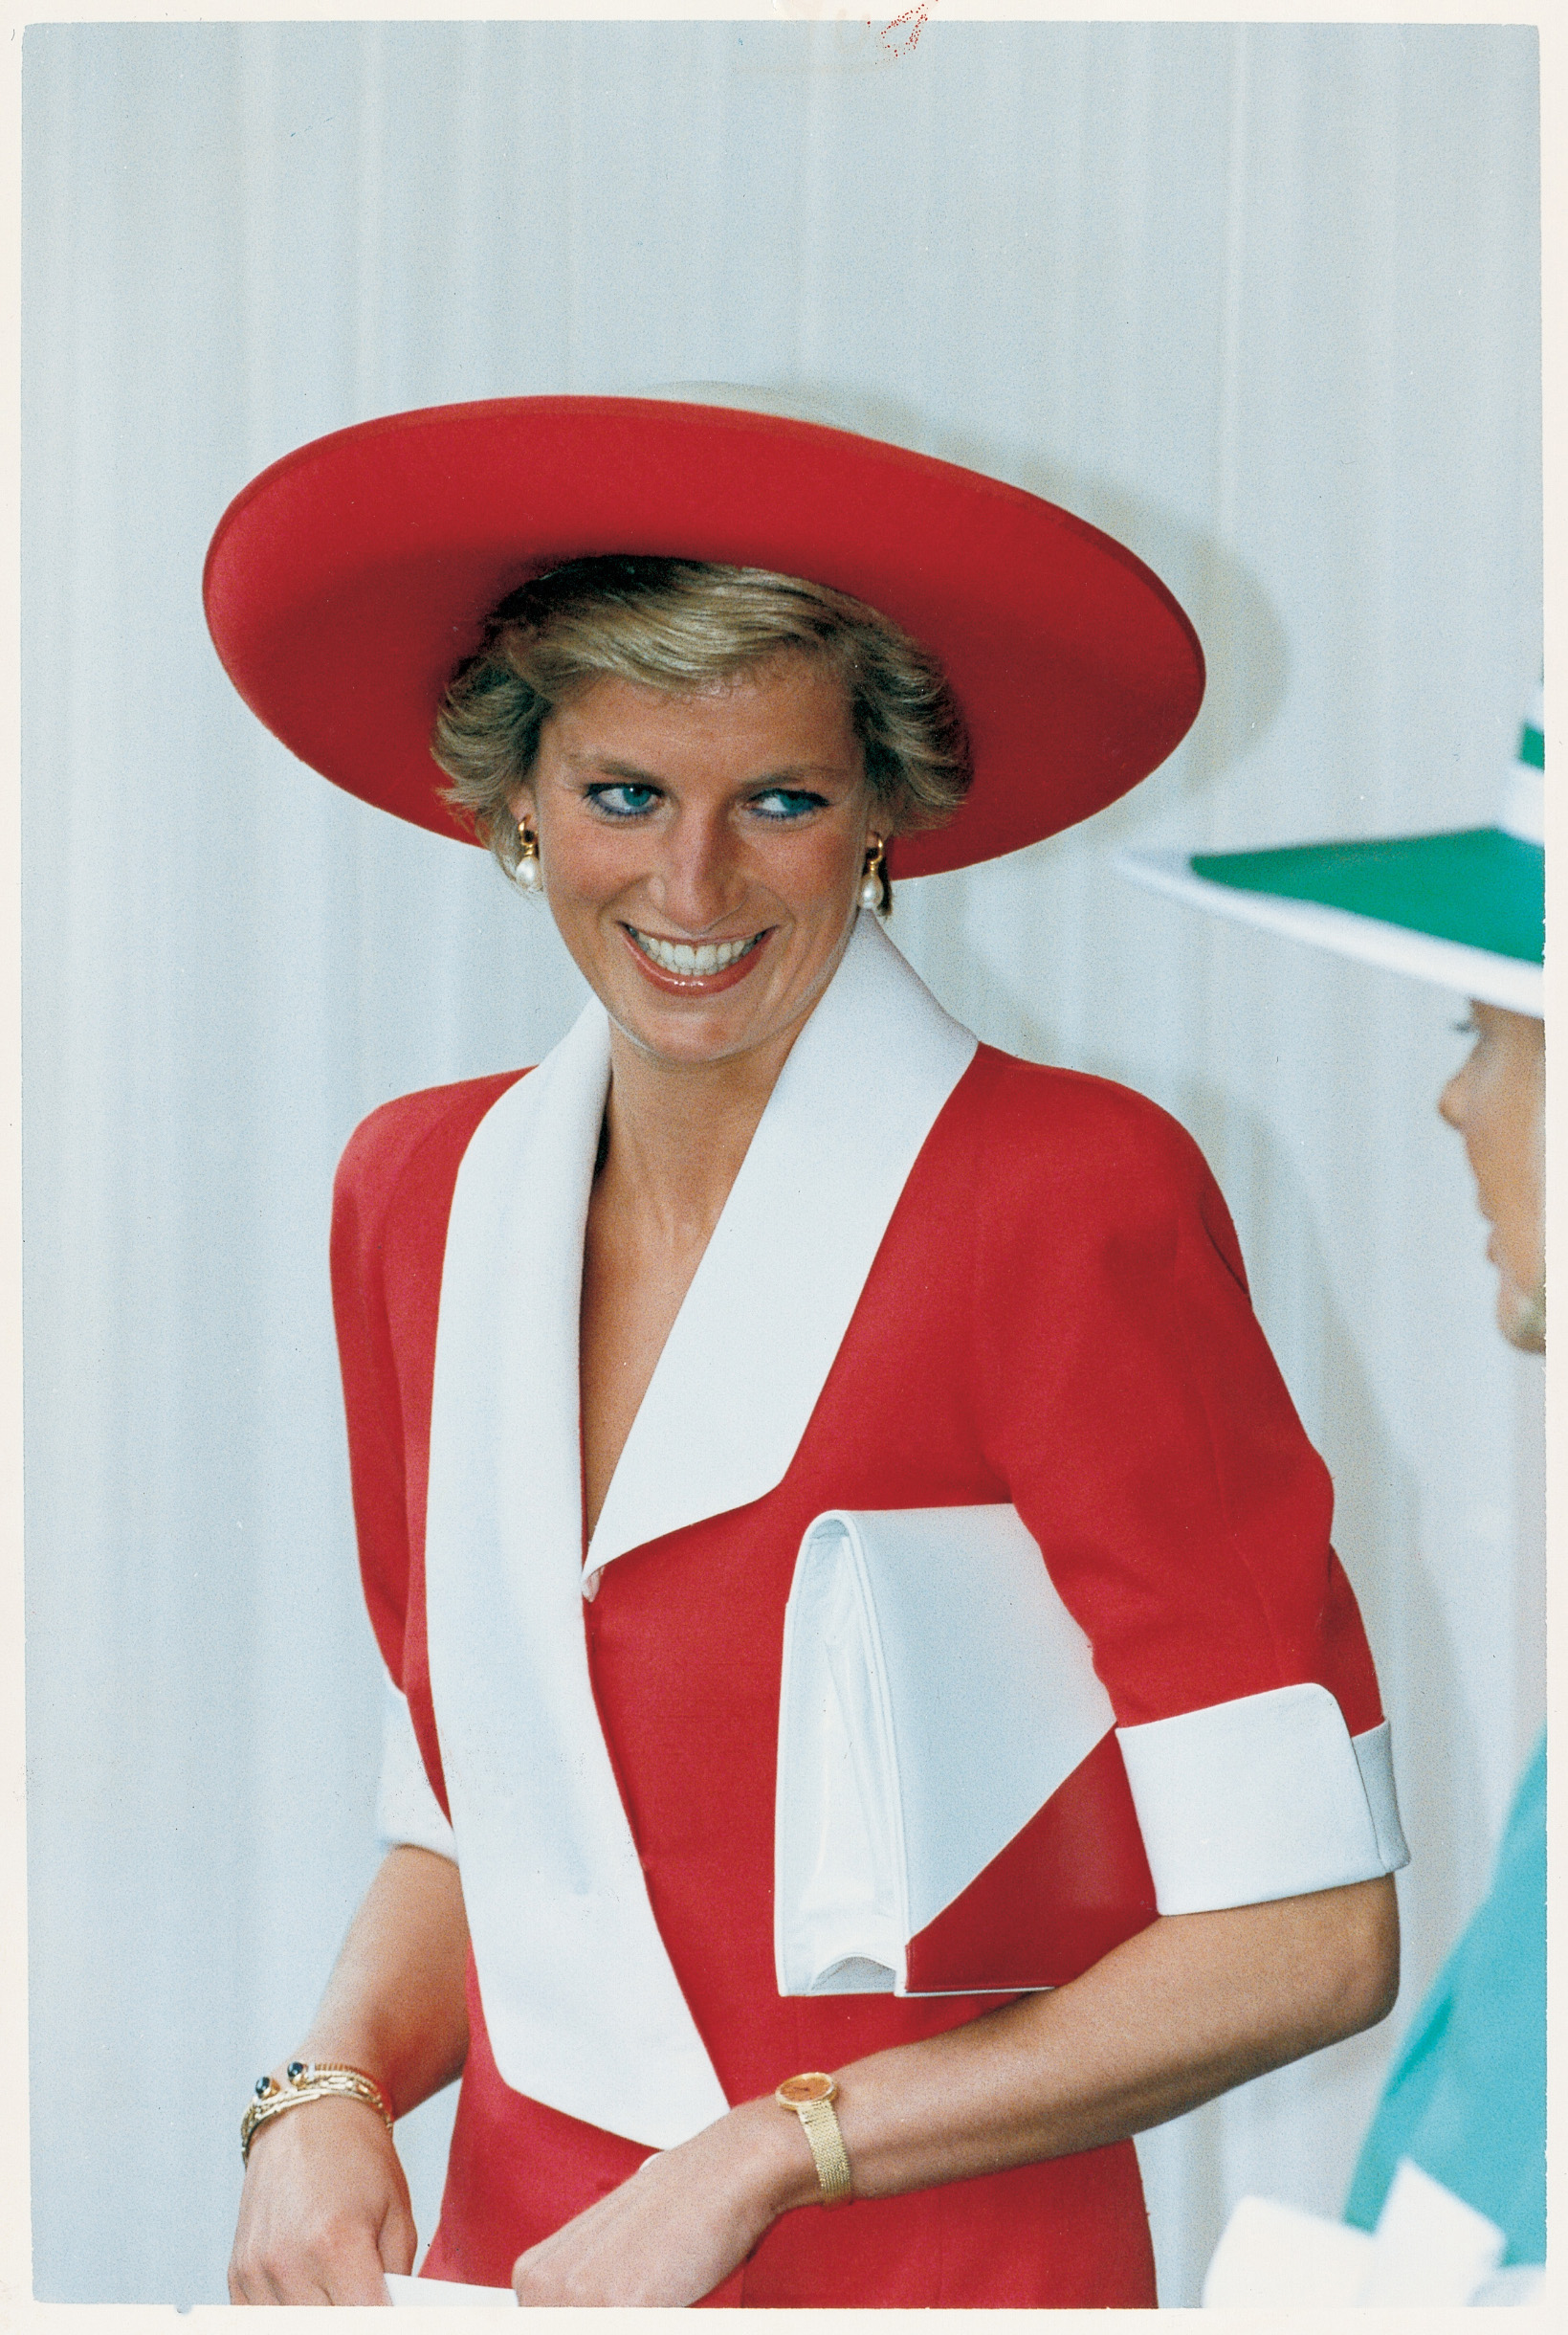 Princess Diana - Unseen Archives by          Charles breaks an arm. Resplendent in red and white for the Garter ceremony at Windsor Castle.  EASTPRESS PICTURES /  SYNDICATION 1990, Image: 22049603, License: Rights-managed, Restrictions: , Model Release: no, Credit line: solo syndication / Solo / Profimedia